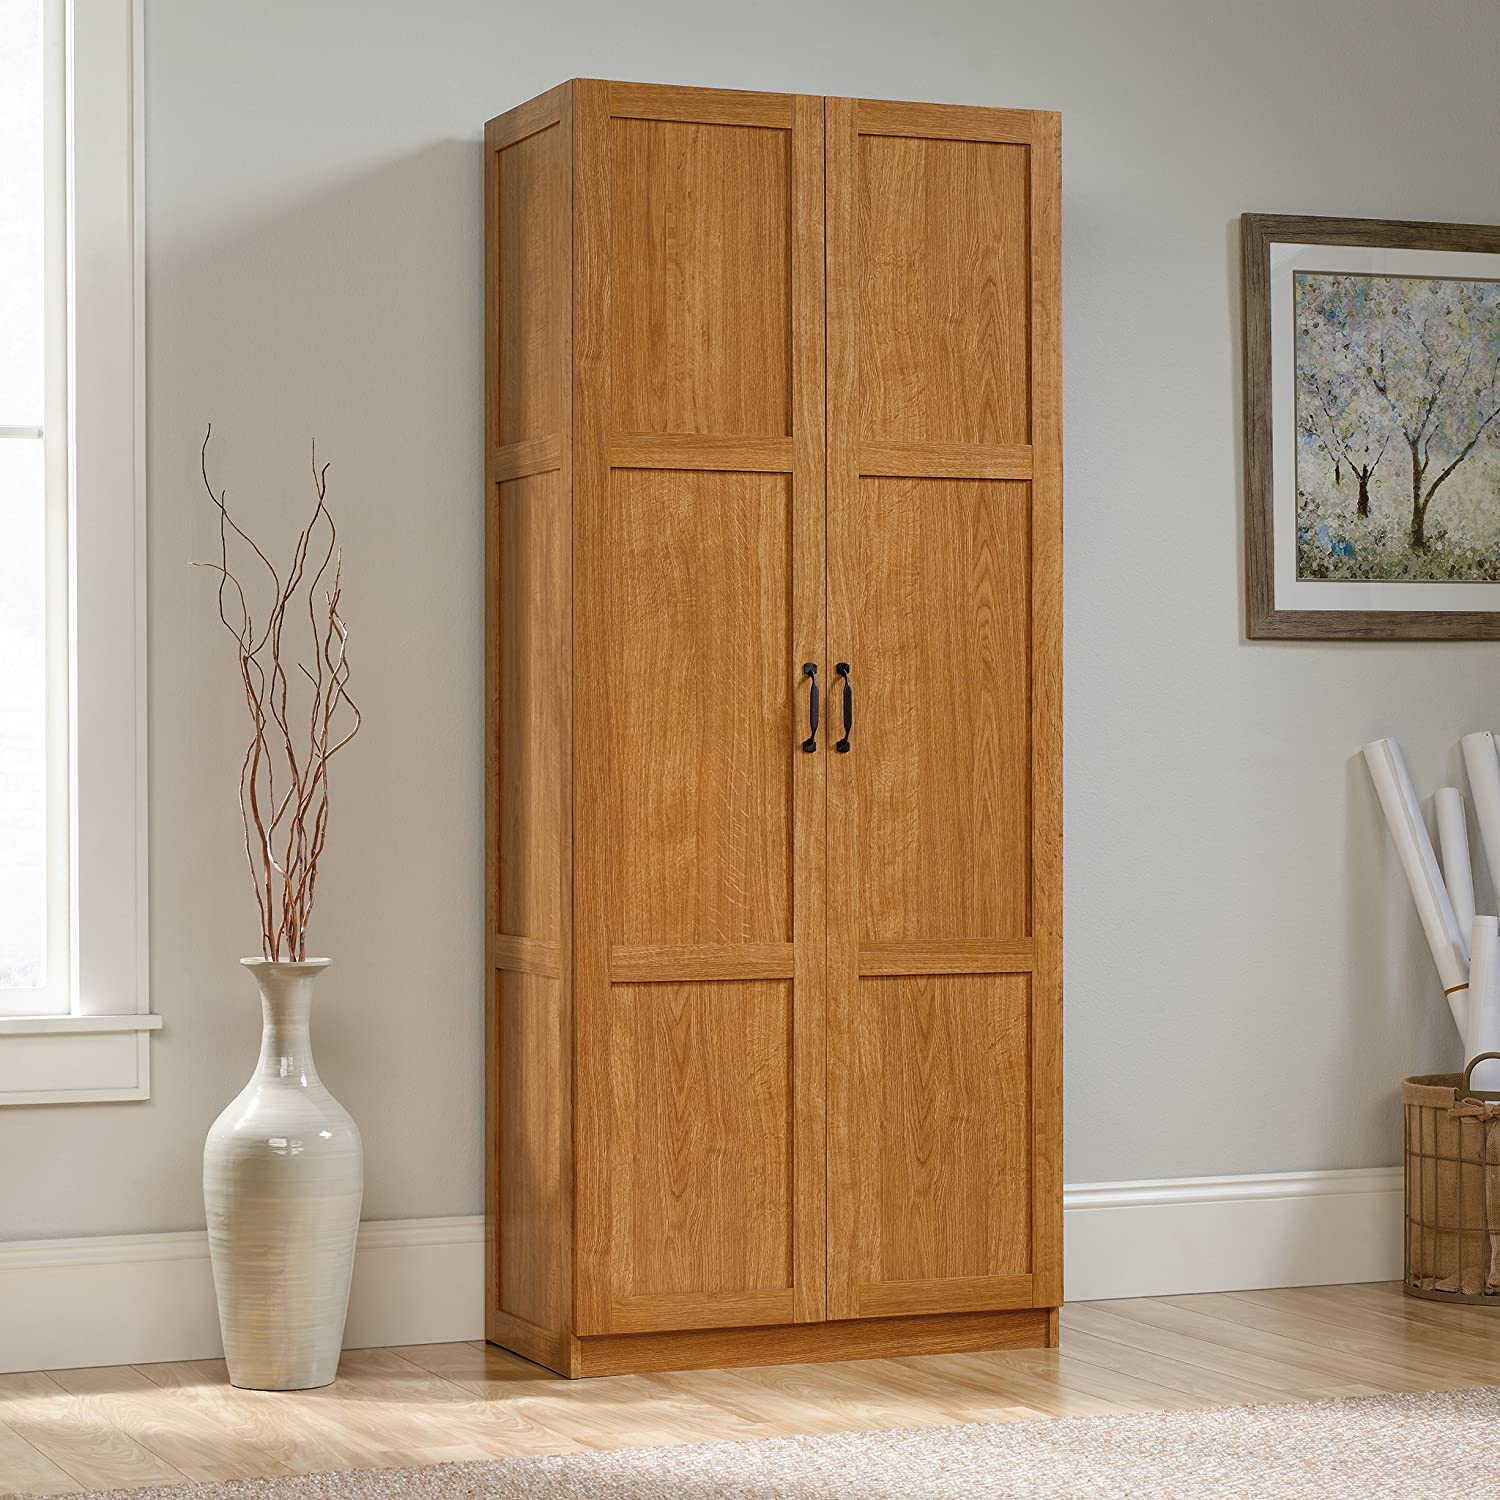 Amazon.com: Sauder Storage Cabinet, Highland Oak Finish: Kitchen U0026 Dining